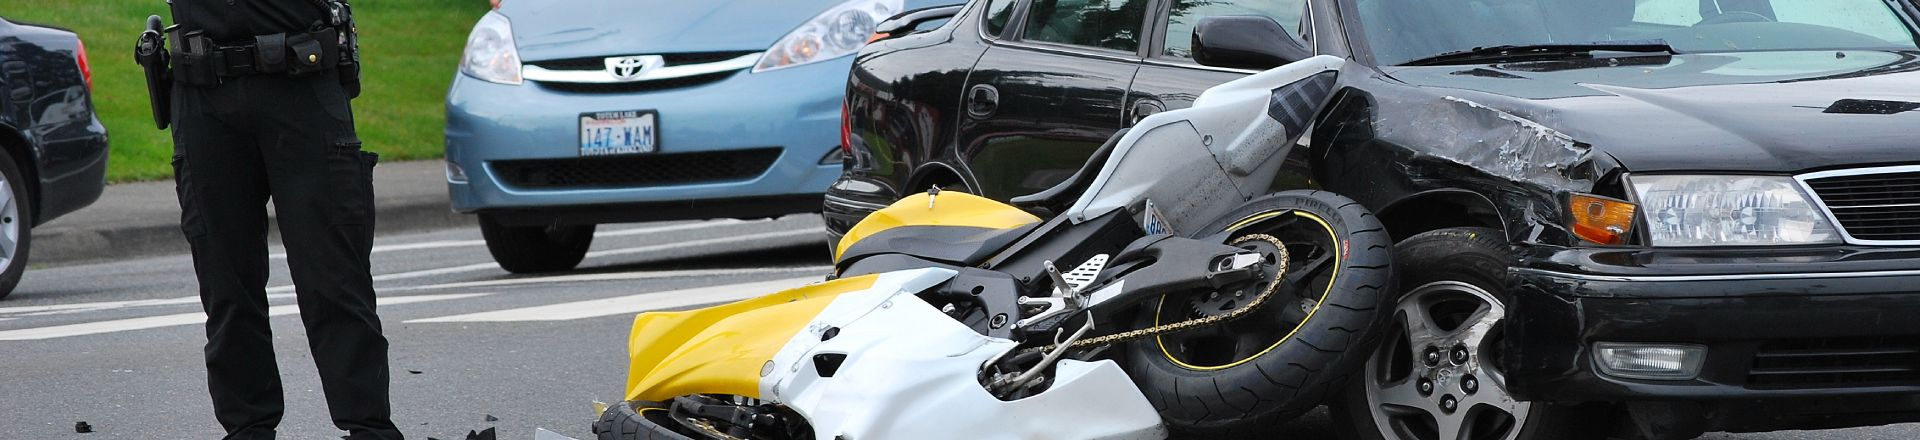 Car Runs Into Motorcycle. Ocala Motorcycle Accident Lawyer